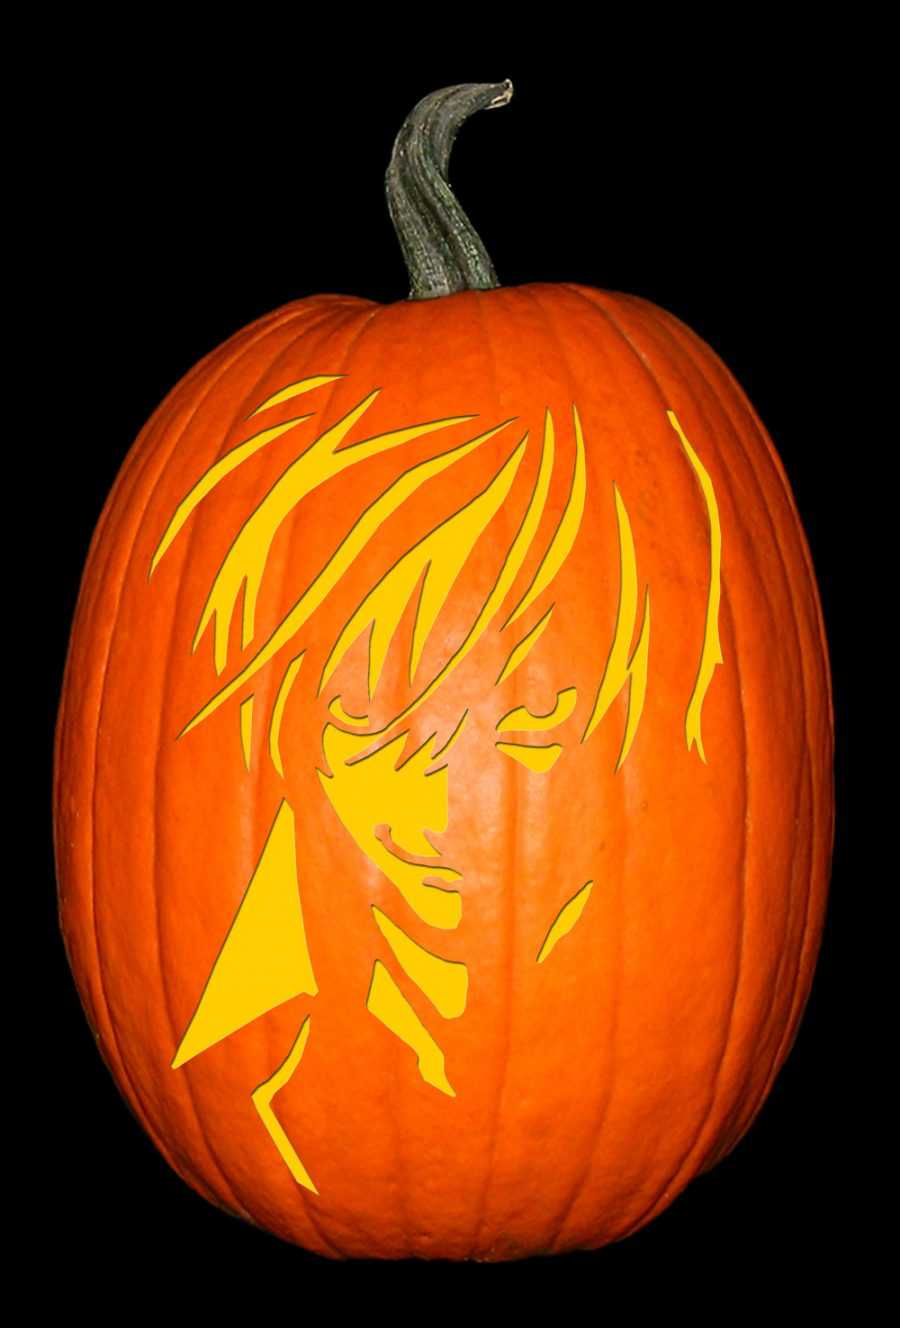 Death Note-Light Yagami Pumpkin